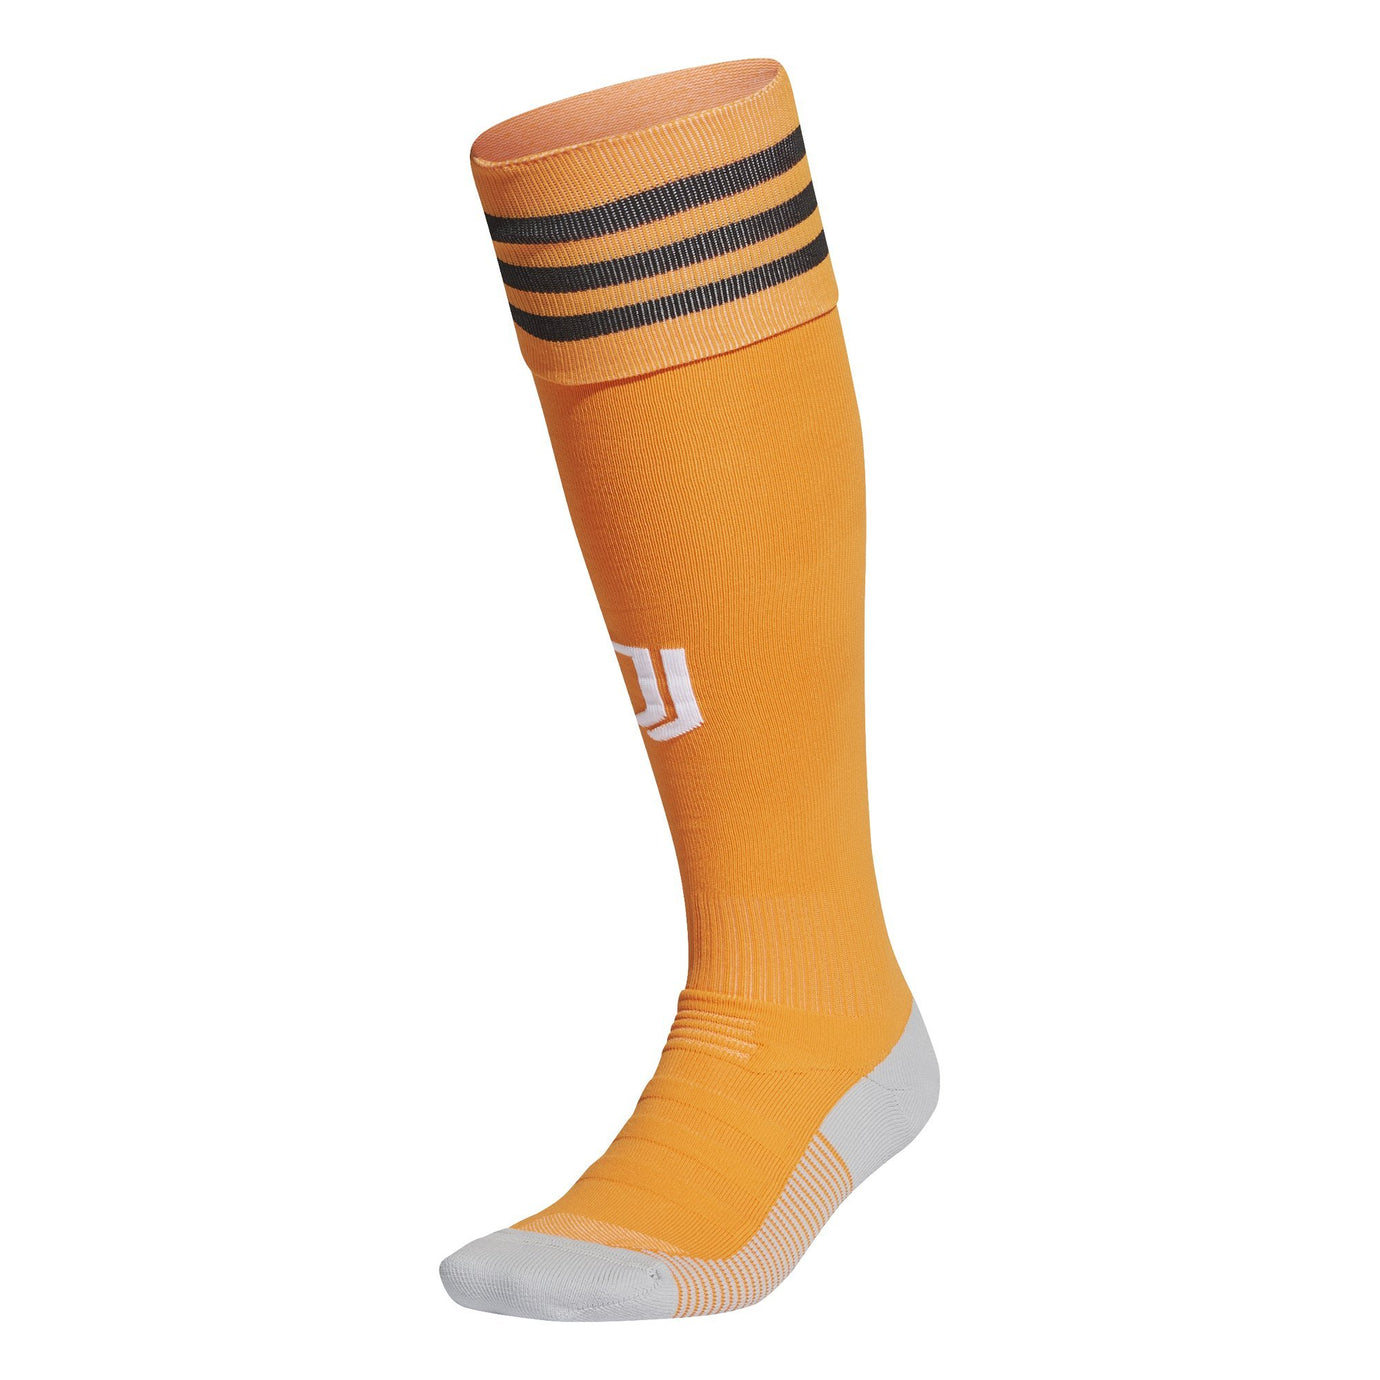 ADI JUVE 20-21 3rd SOCK BAHIA ORANGE/STONE